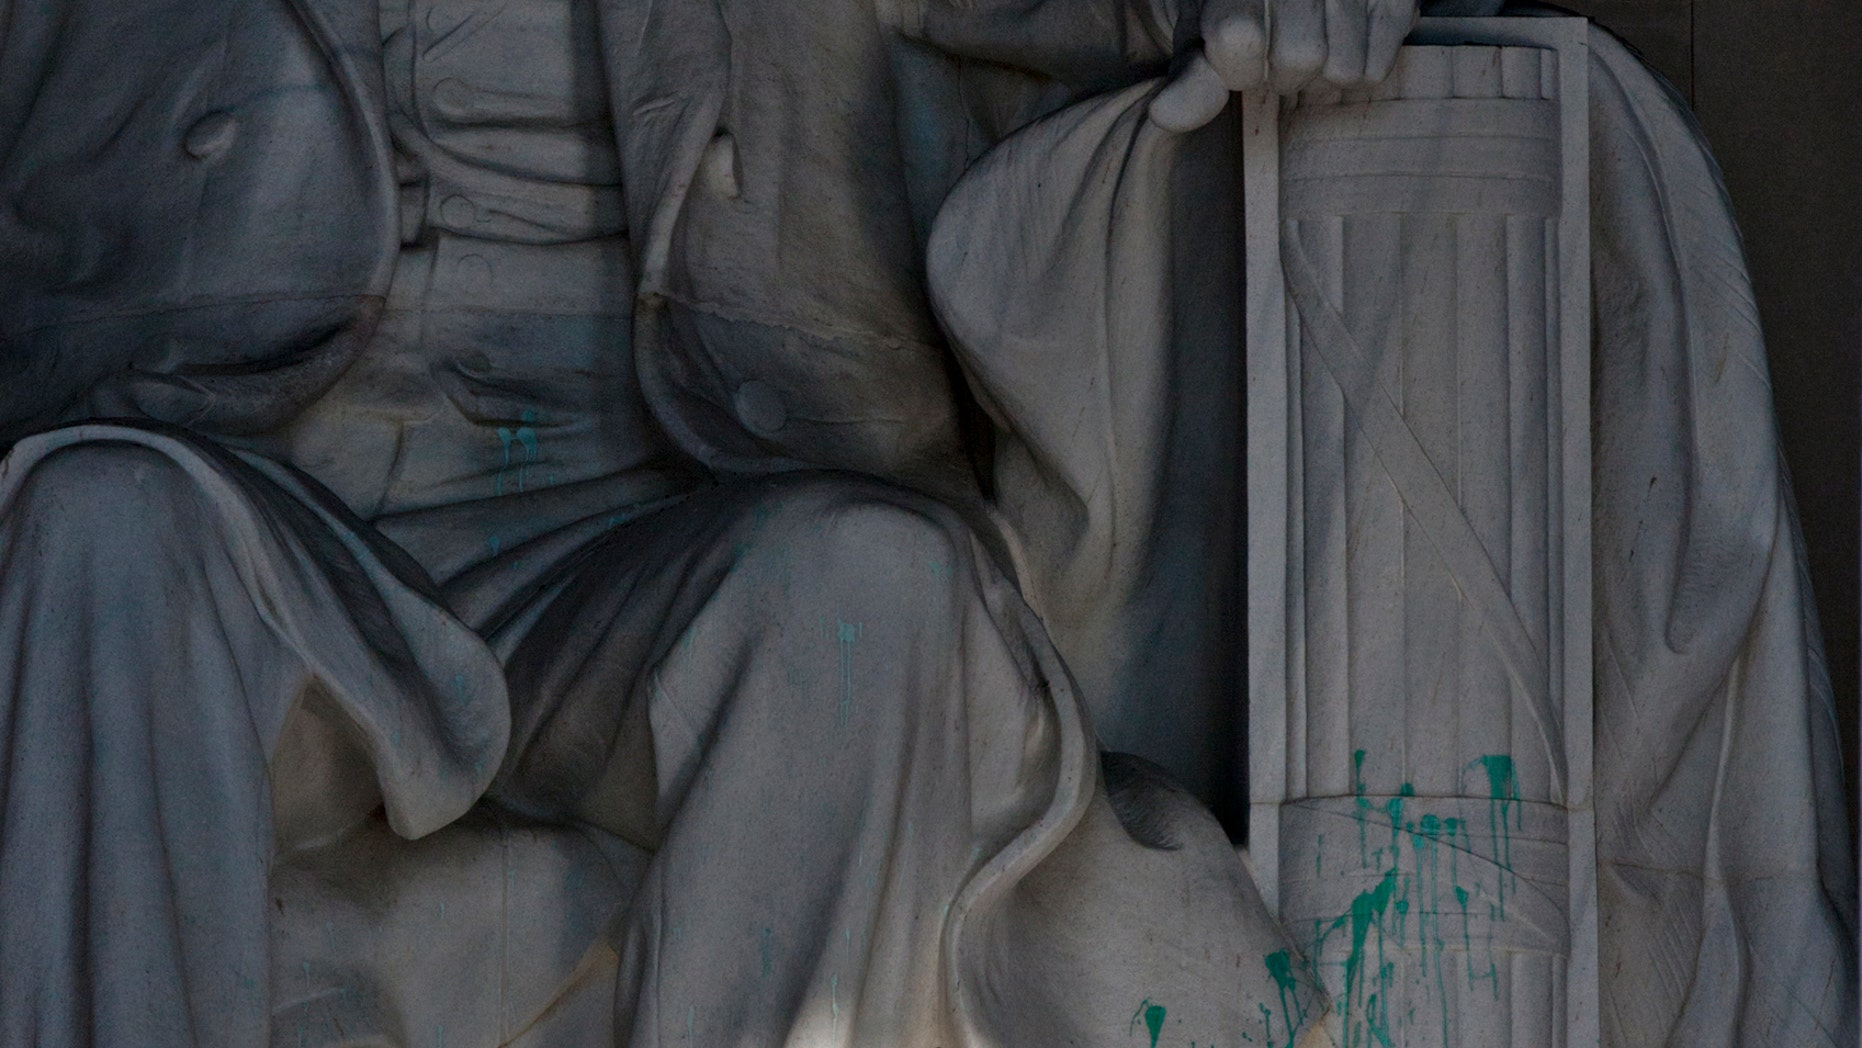 July 26, 2013: A U.S. Park Police officer stands guard next to the statue of Abraham Lincoln at the memorial in Washington after the memorial was closed to visitors after someone splattered green paint on the statue and the floor area.